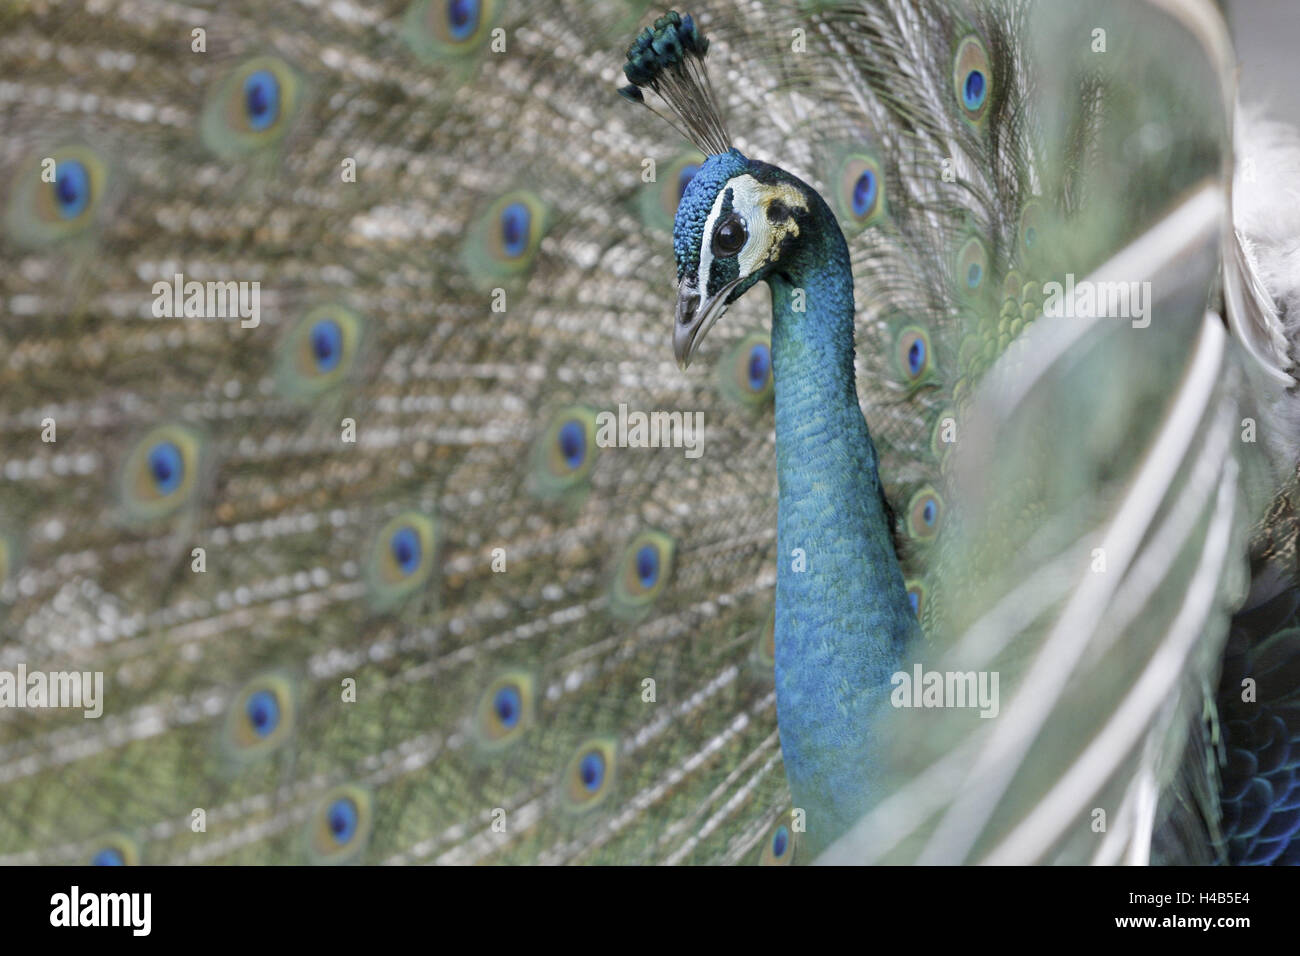 Blue peacock, Pavo cristatus, tread, little man, animal portrait, animal, zoo, zoo animal, bird, ave, gallinaceous - Stock Image